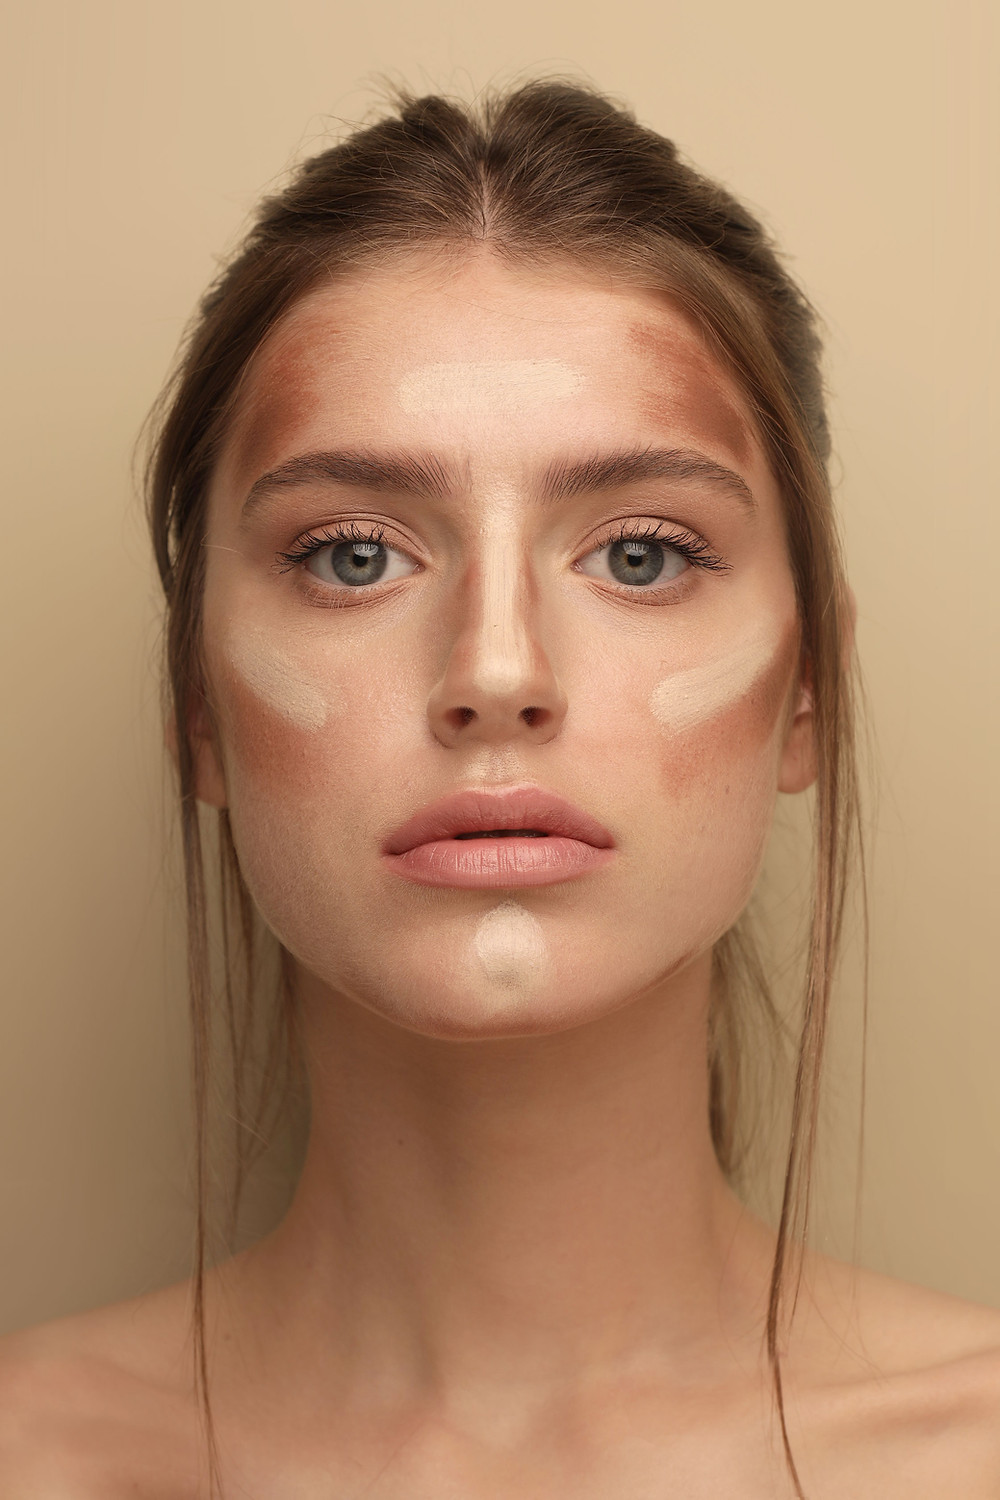 Face contouring on a woman